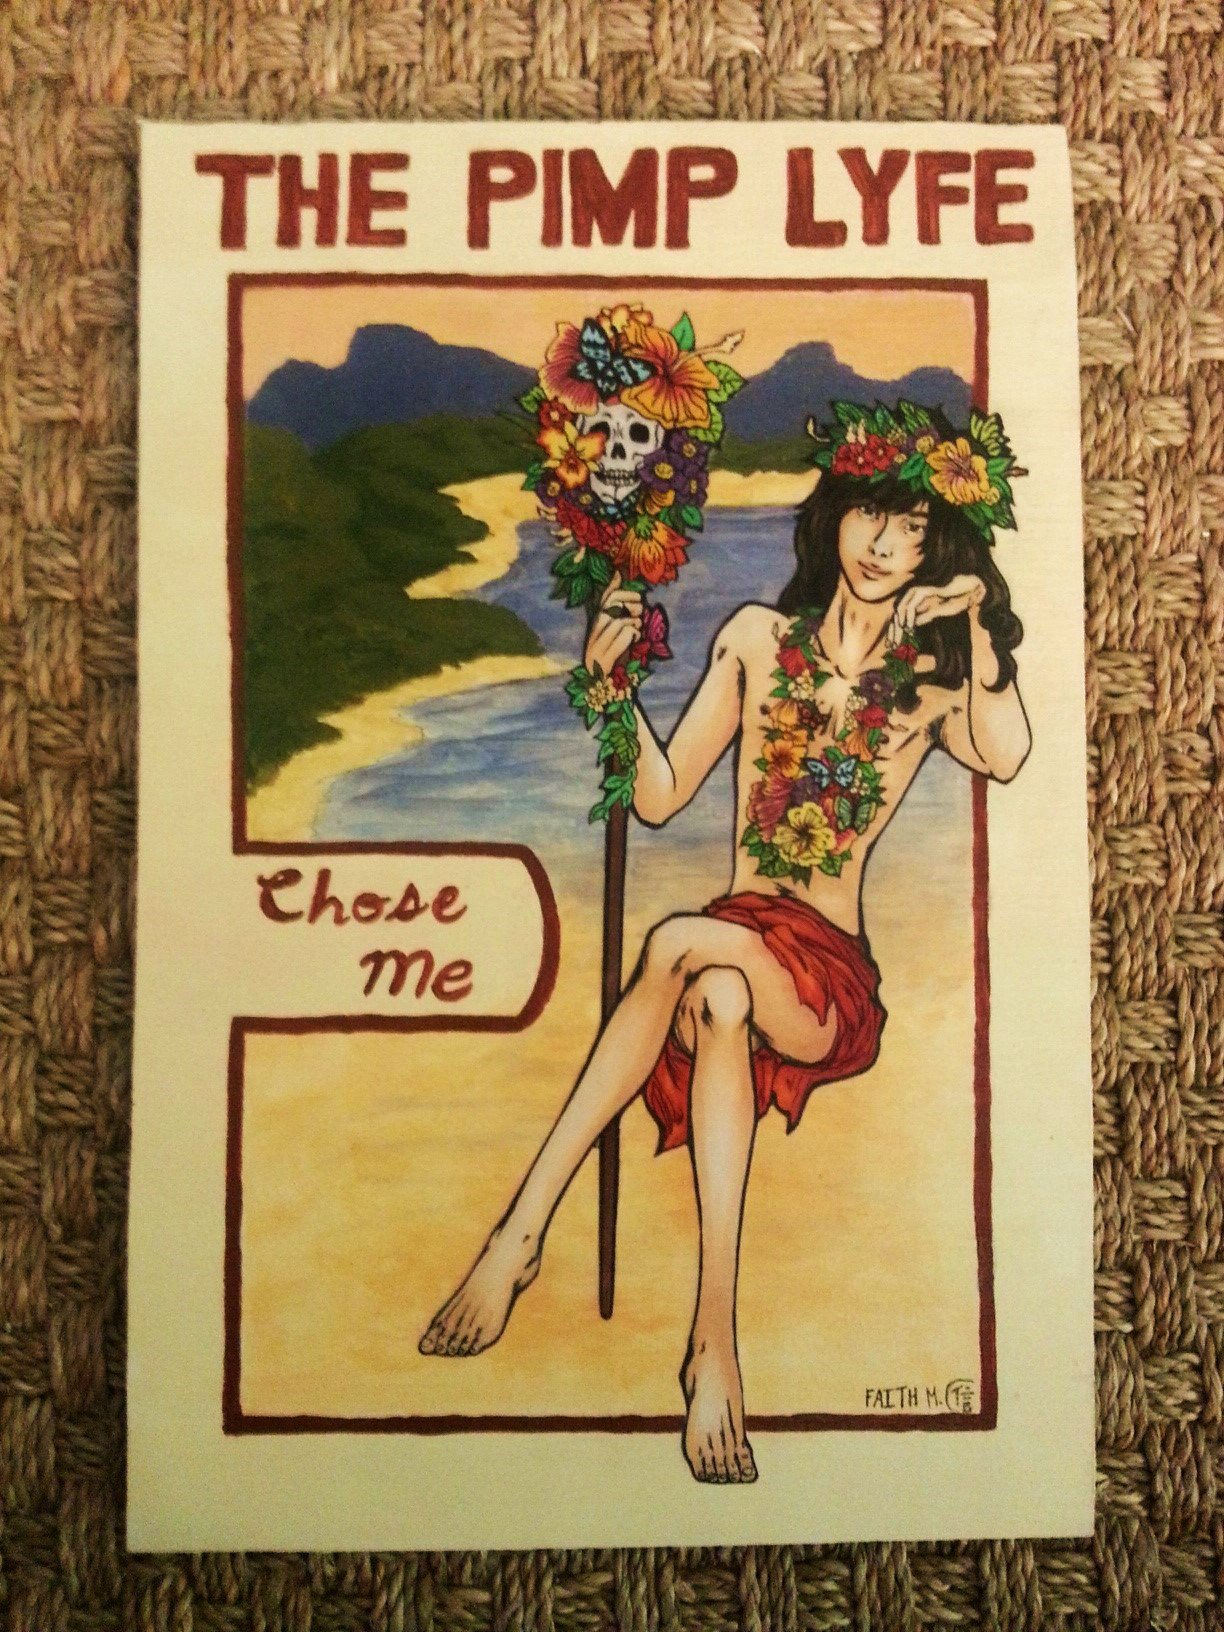 """Pimp Lyfe"" -  mixed media on wood panel - artwork up for auction from Faith Mathis"